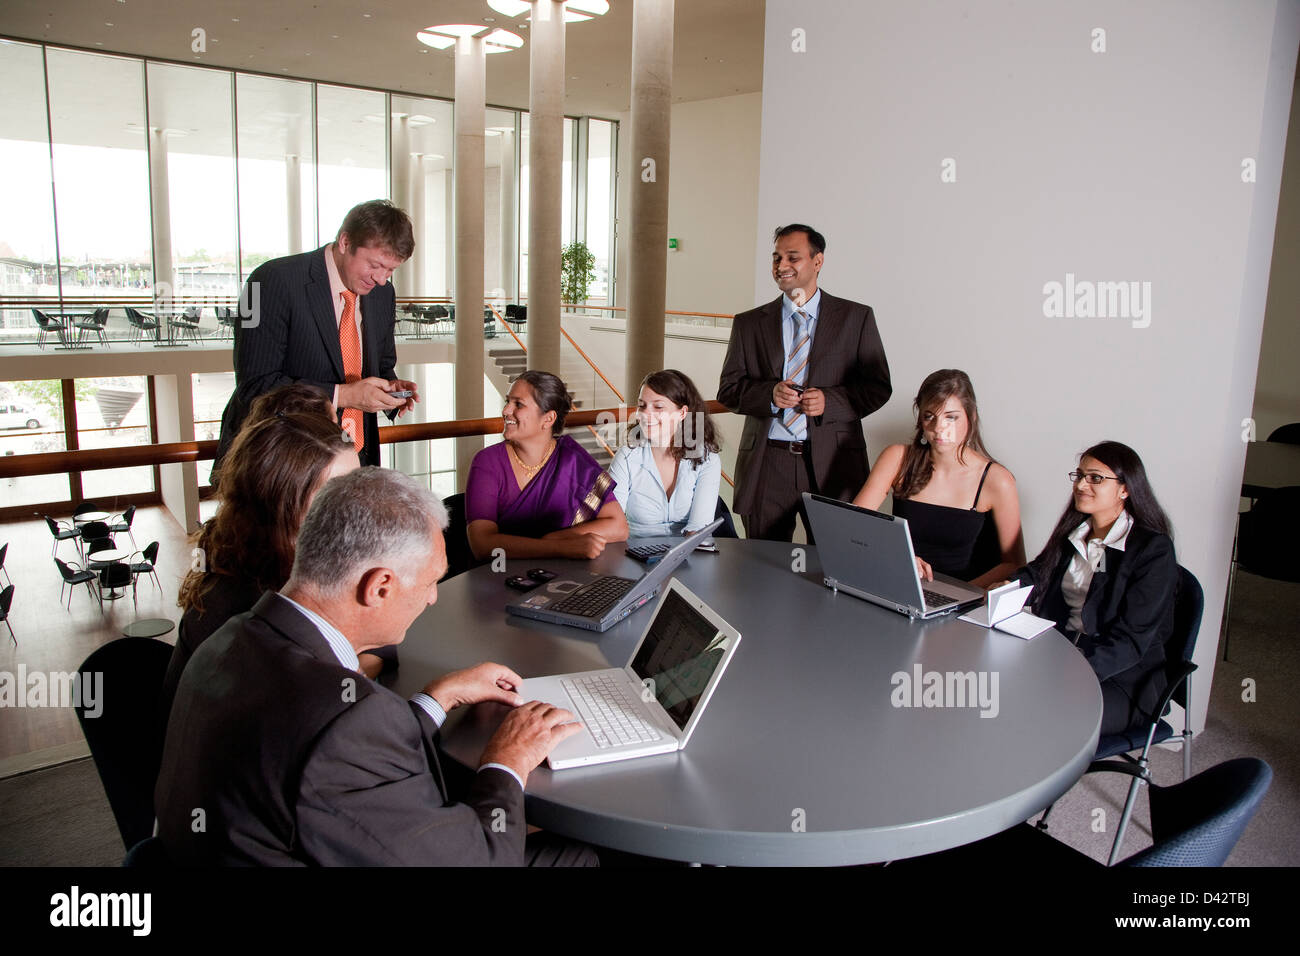 Exceptionnel Freiburg, Germany, An International Business Team At A Meeting   Stock Image